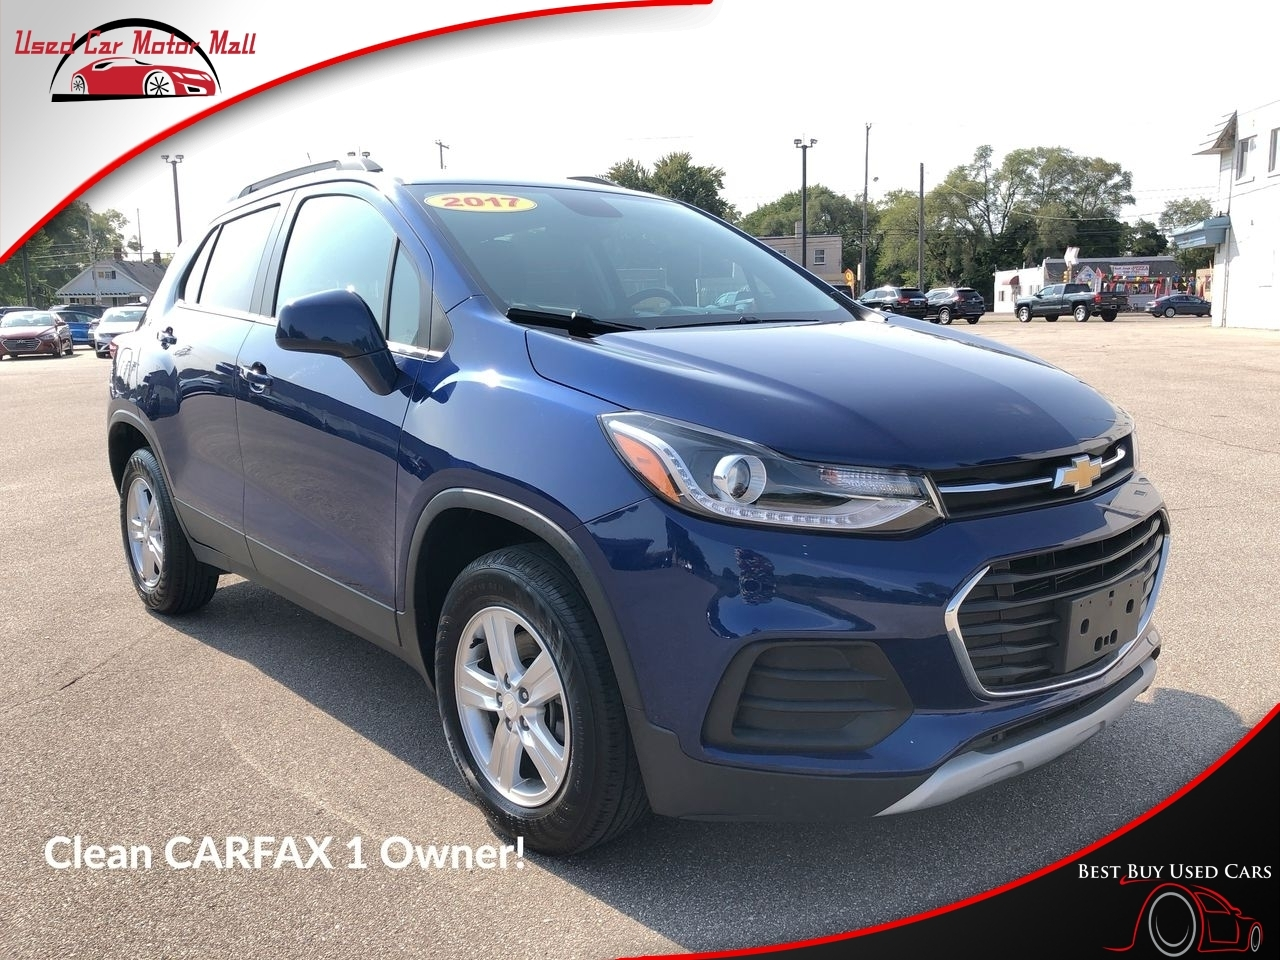 2017 Chevrolet Trax LT AWD, 290706, Photo 1